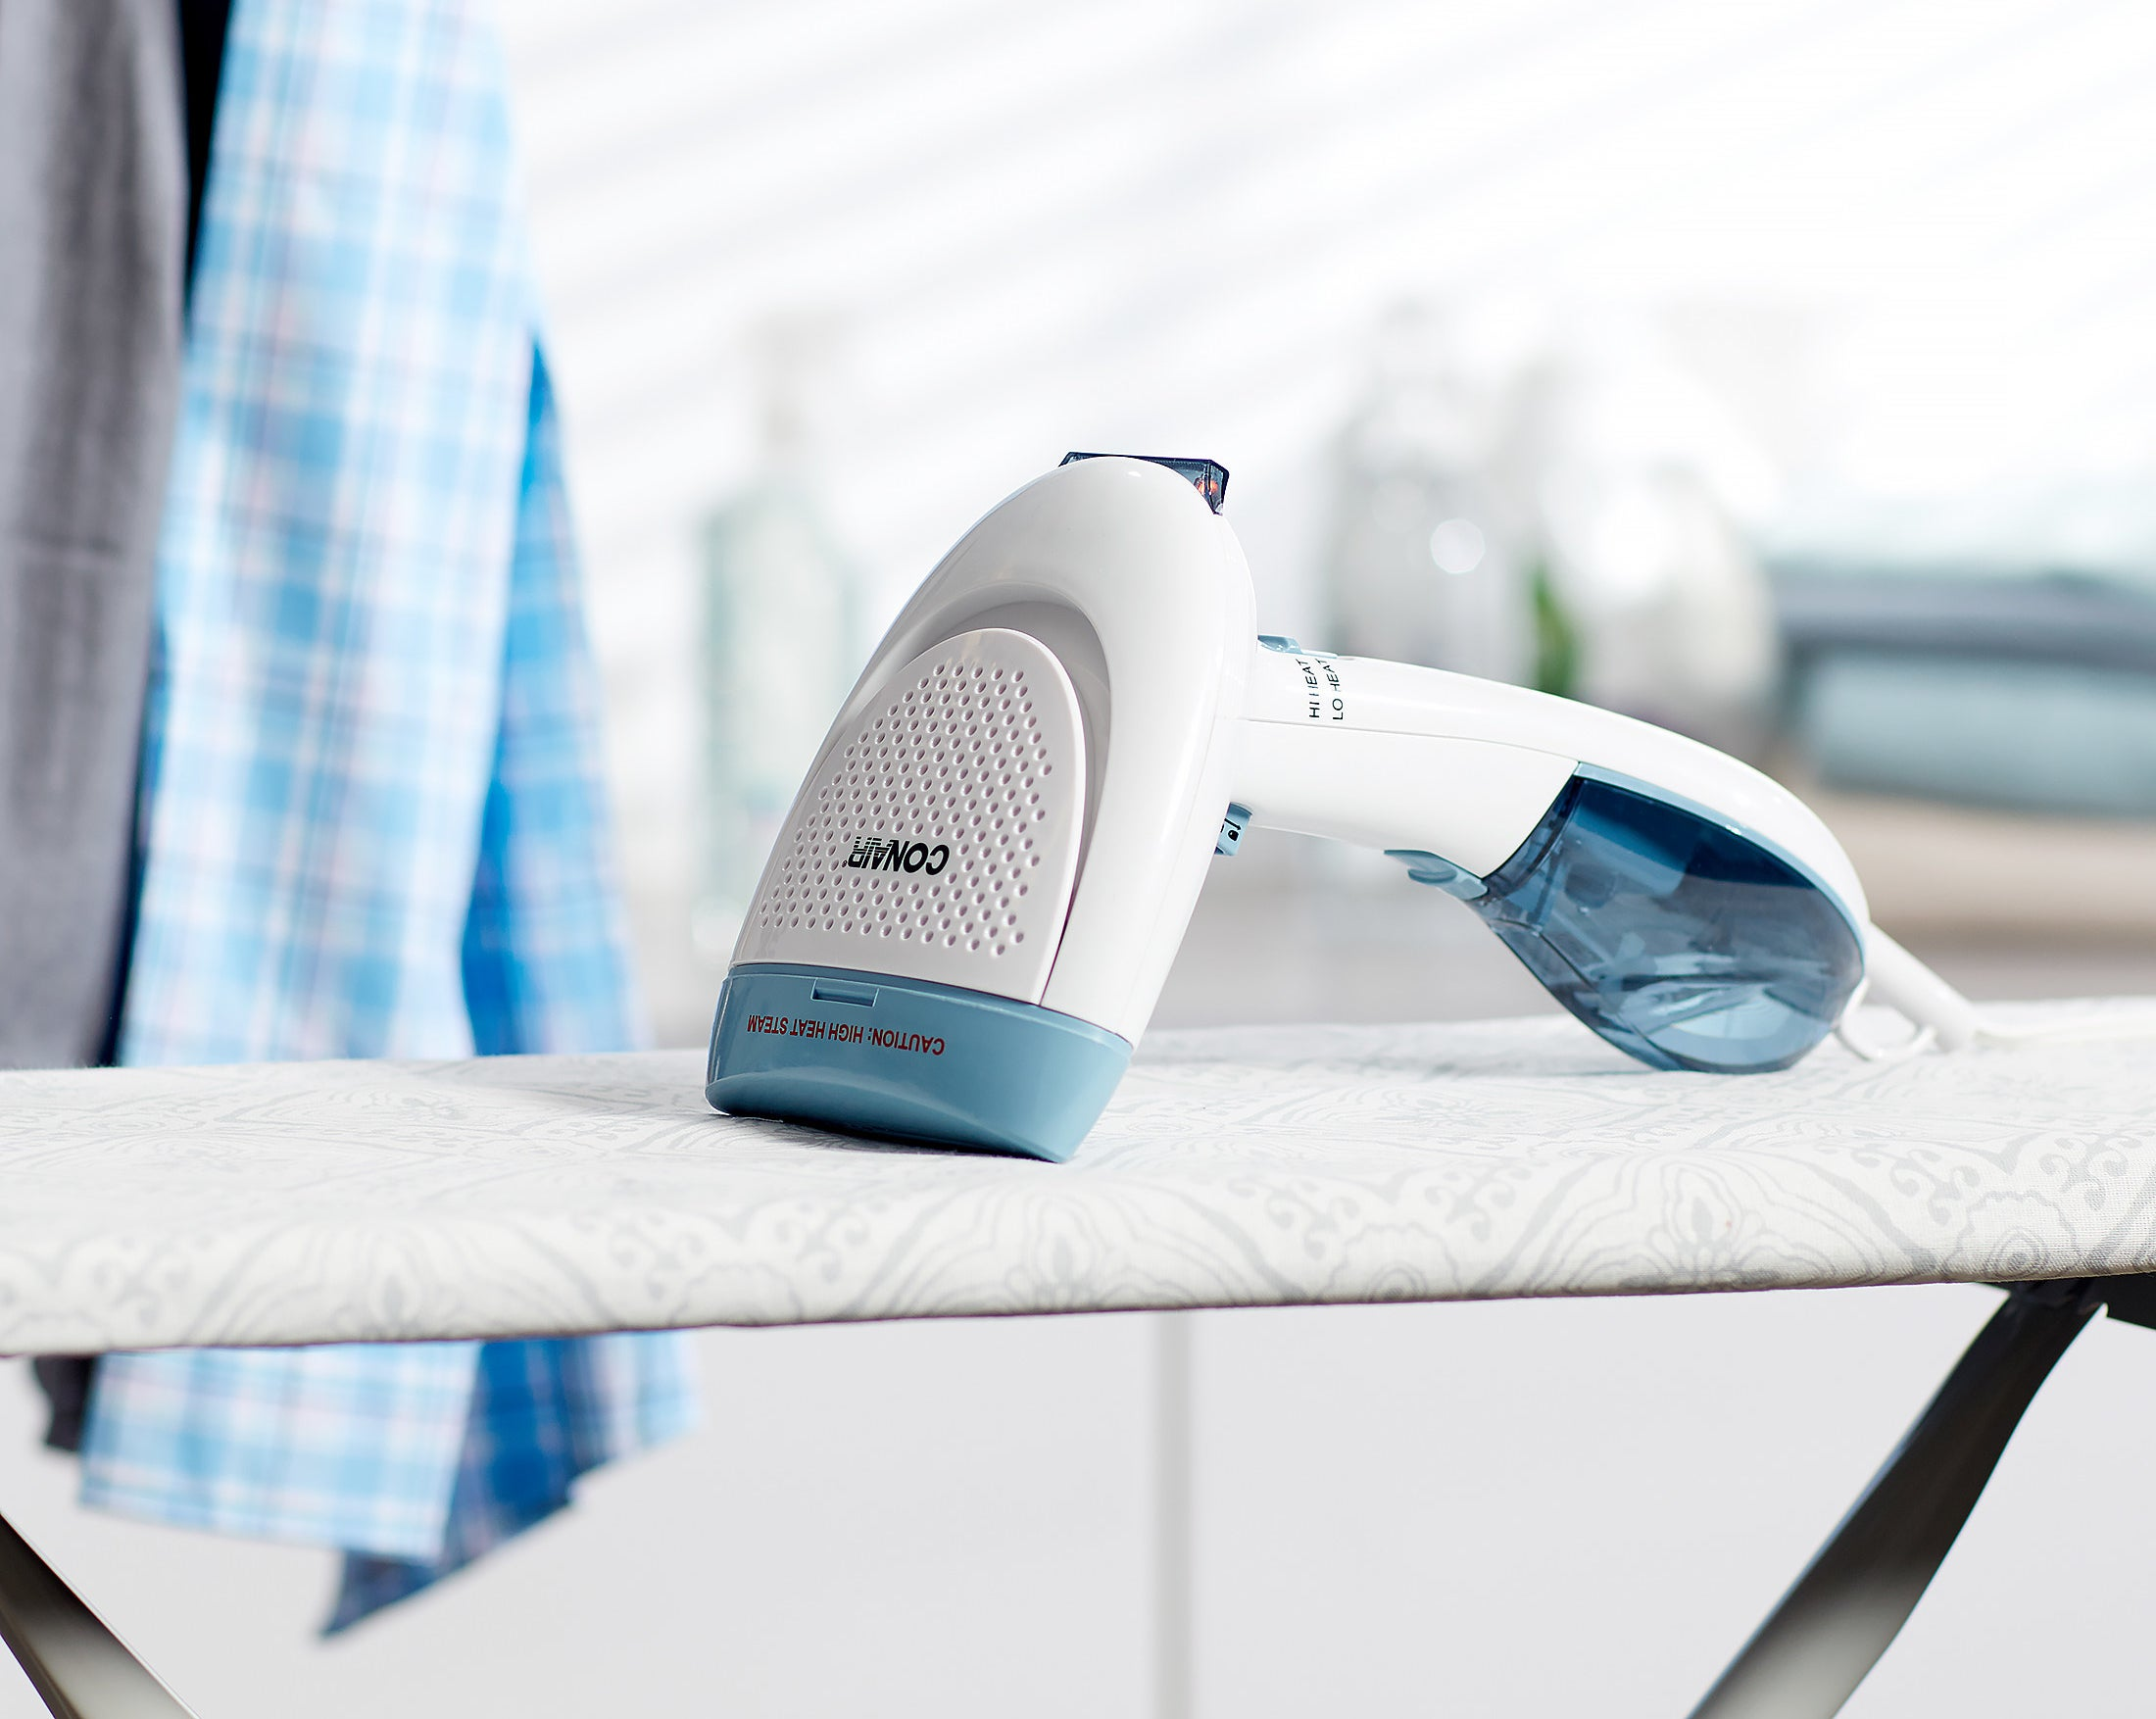 The clothing steamer on top of an ironing board